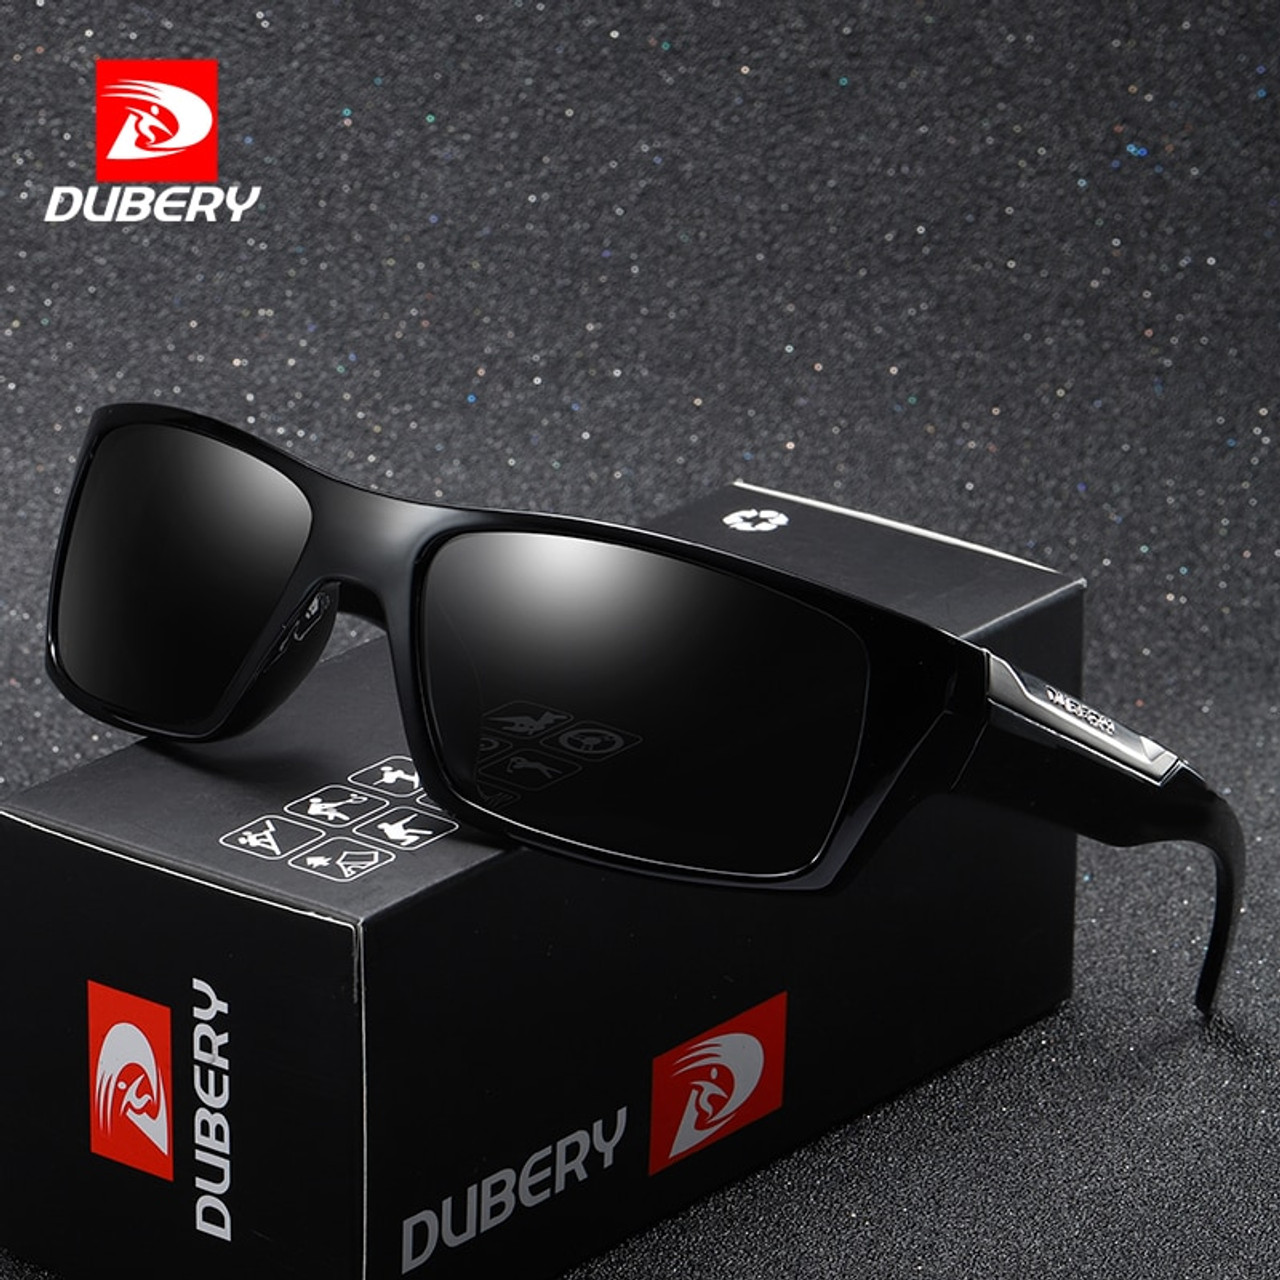 a5eab89f34 DUBERY Brand Design Polarized Sunglasses Men Driving Shades Male Retro Sun  Glasses For Men Summer Mirror Fashion UV400 Oculos - OnshopDeals.Com